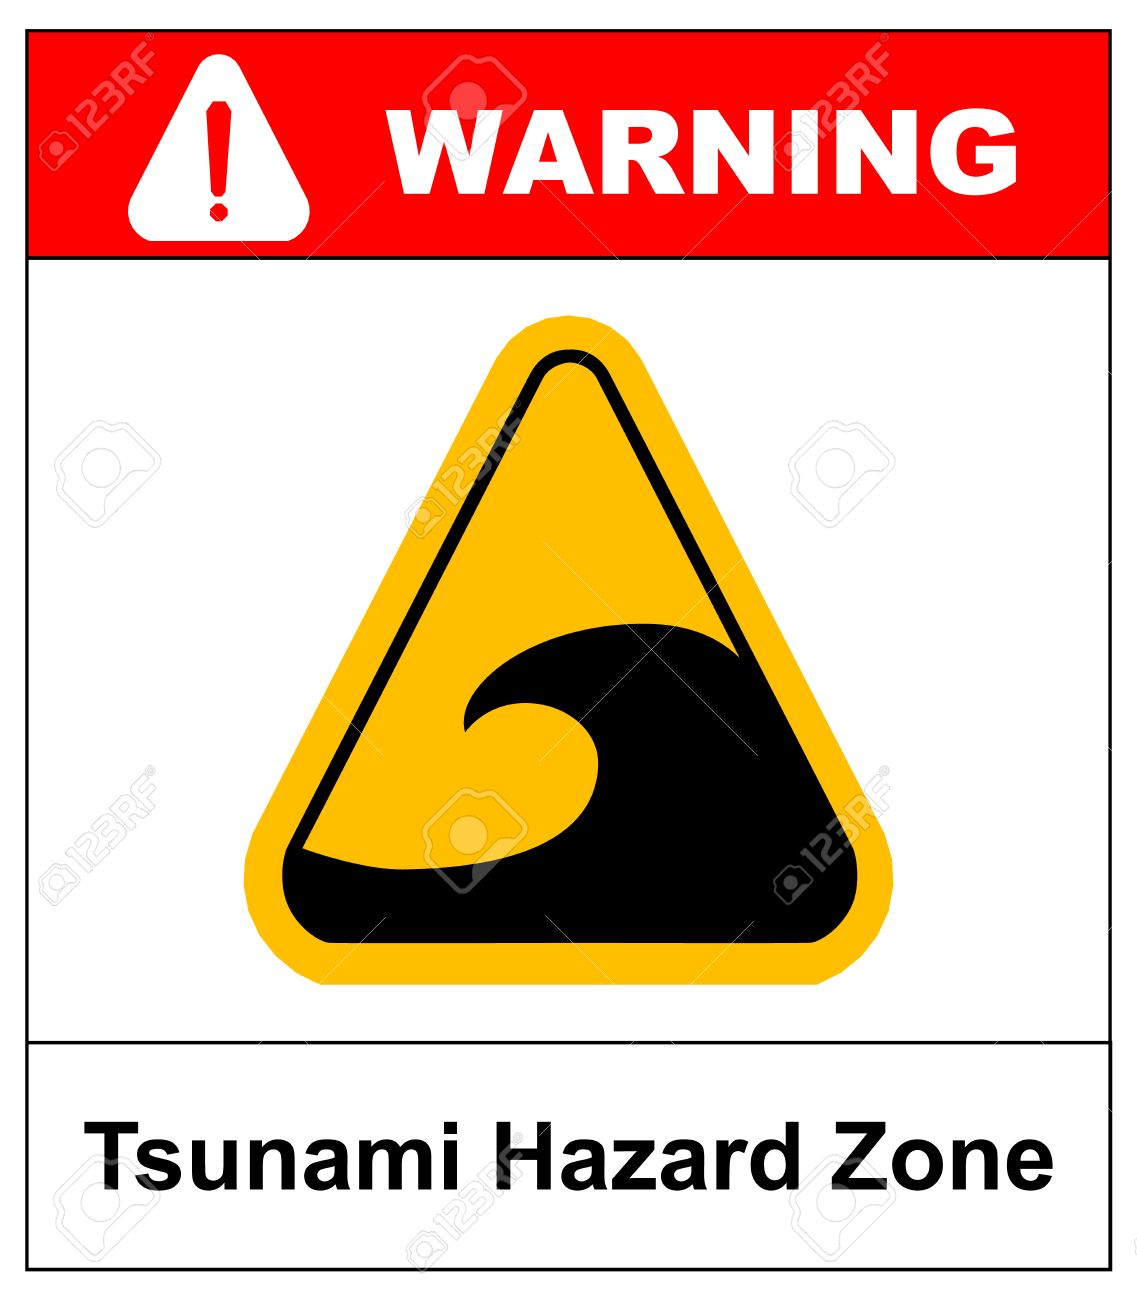 Tsunami hazard zone sign  In case of earthouake go to high ground